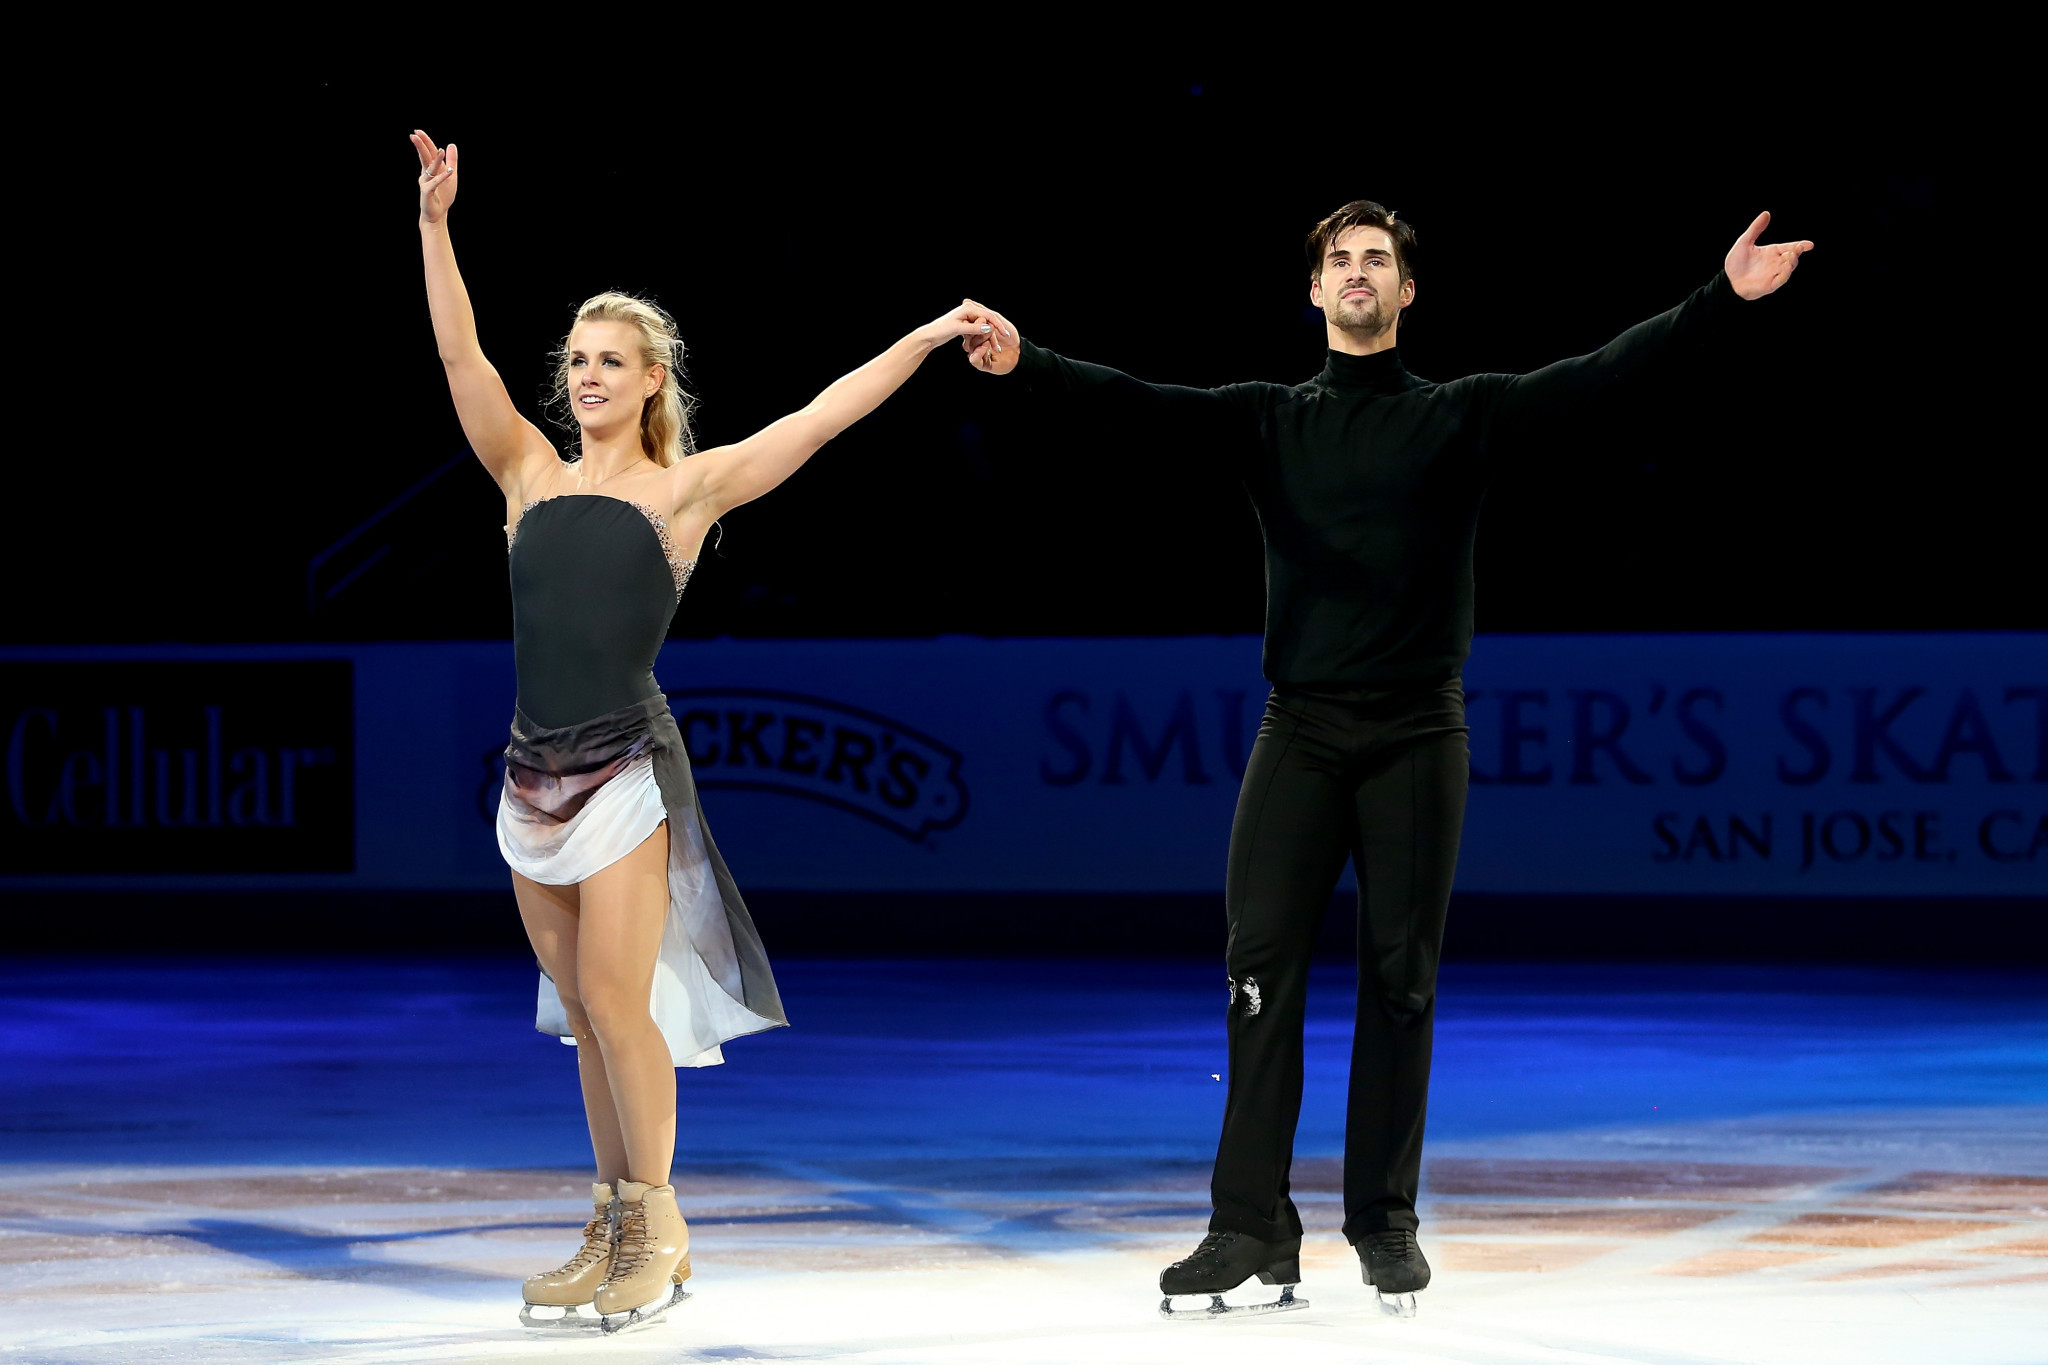 Madison Hubbell and Zachary Donohue are among the ice dance teams ©Getty Images